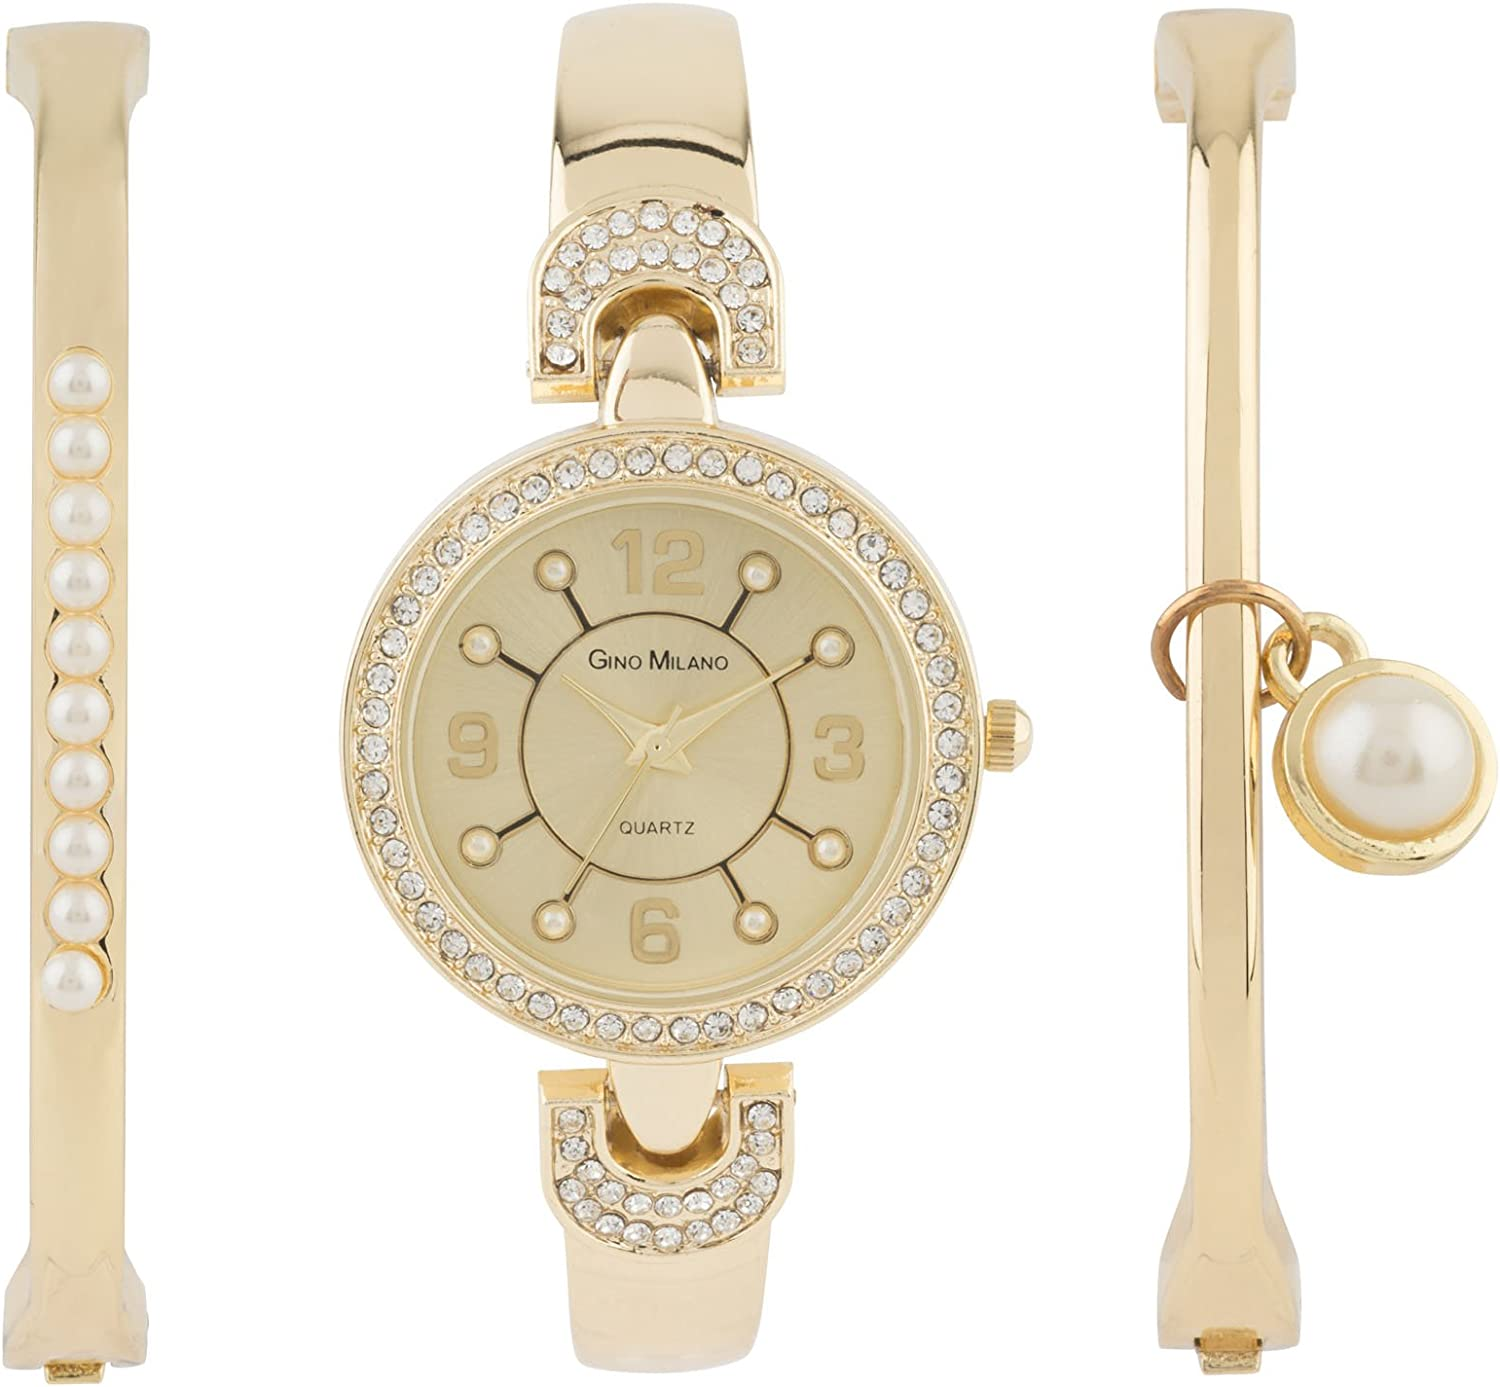 Ladies Gold Watch with Matching Pearl Bracelets Gift Set